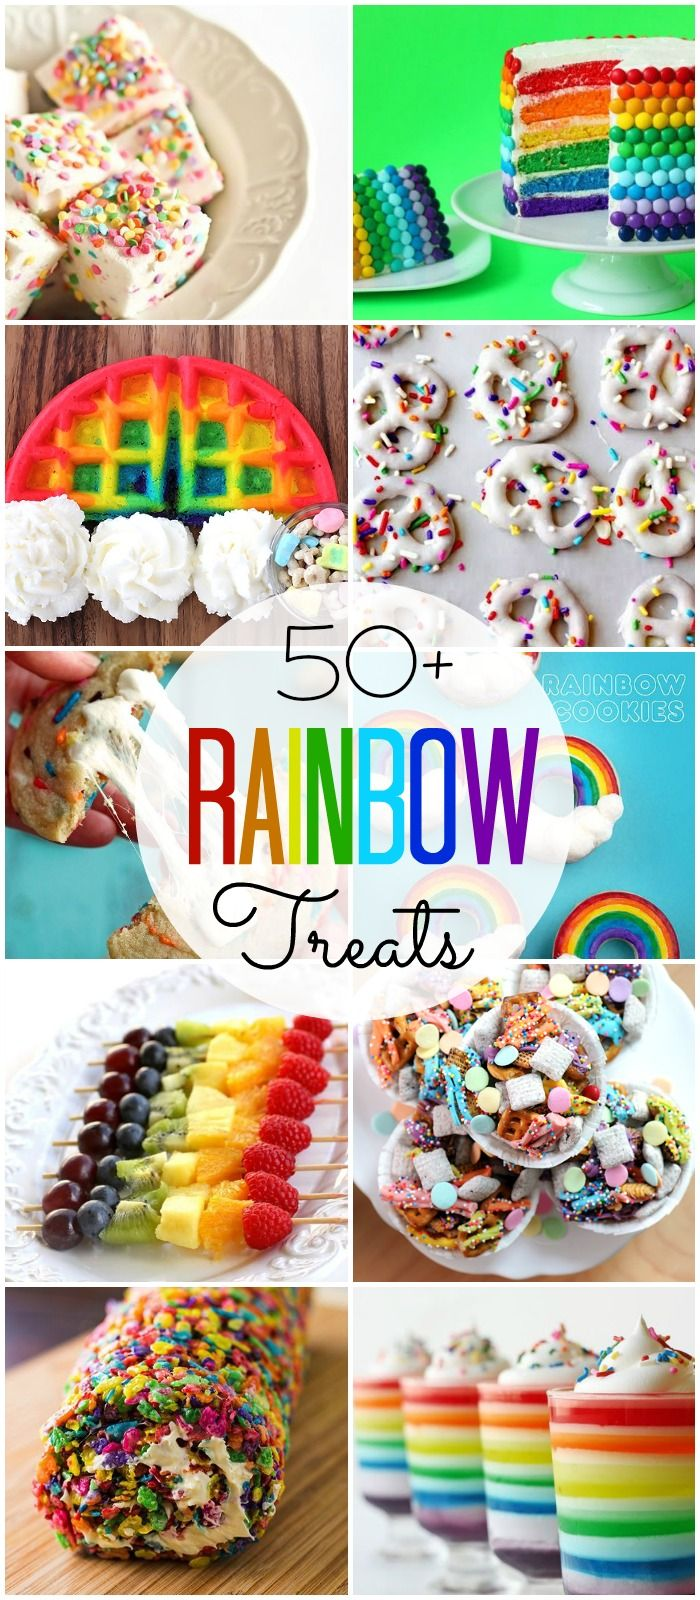 50+ Rainbow Treats - YUMMY!!!